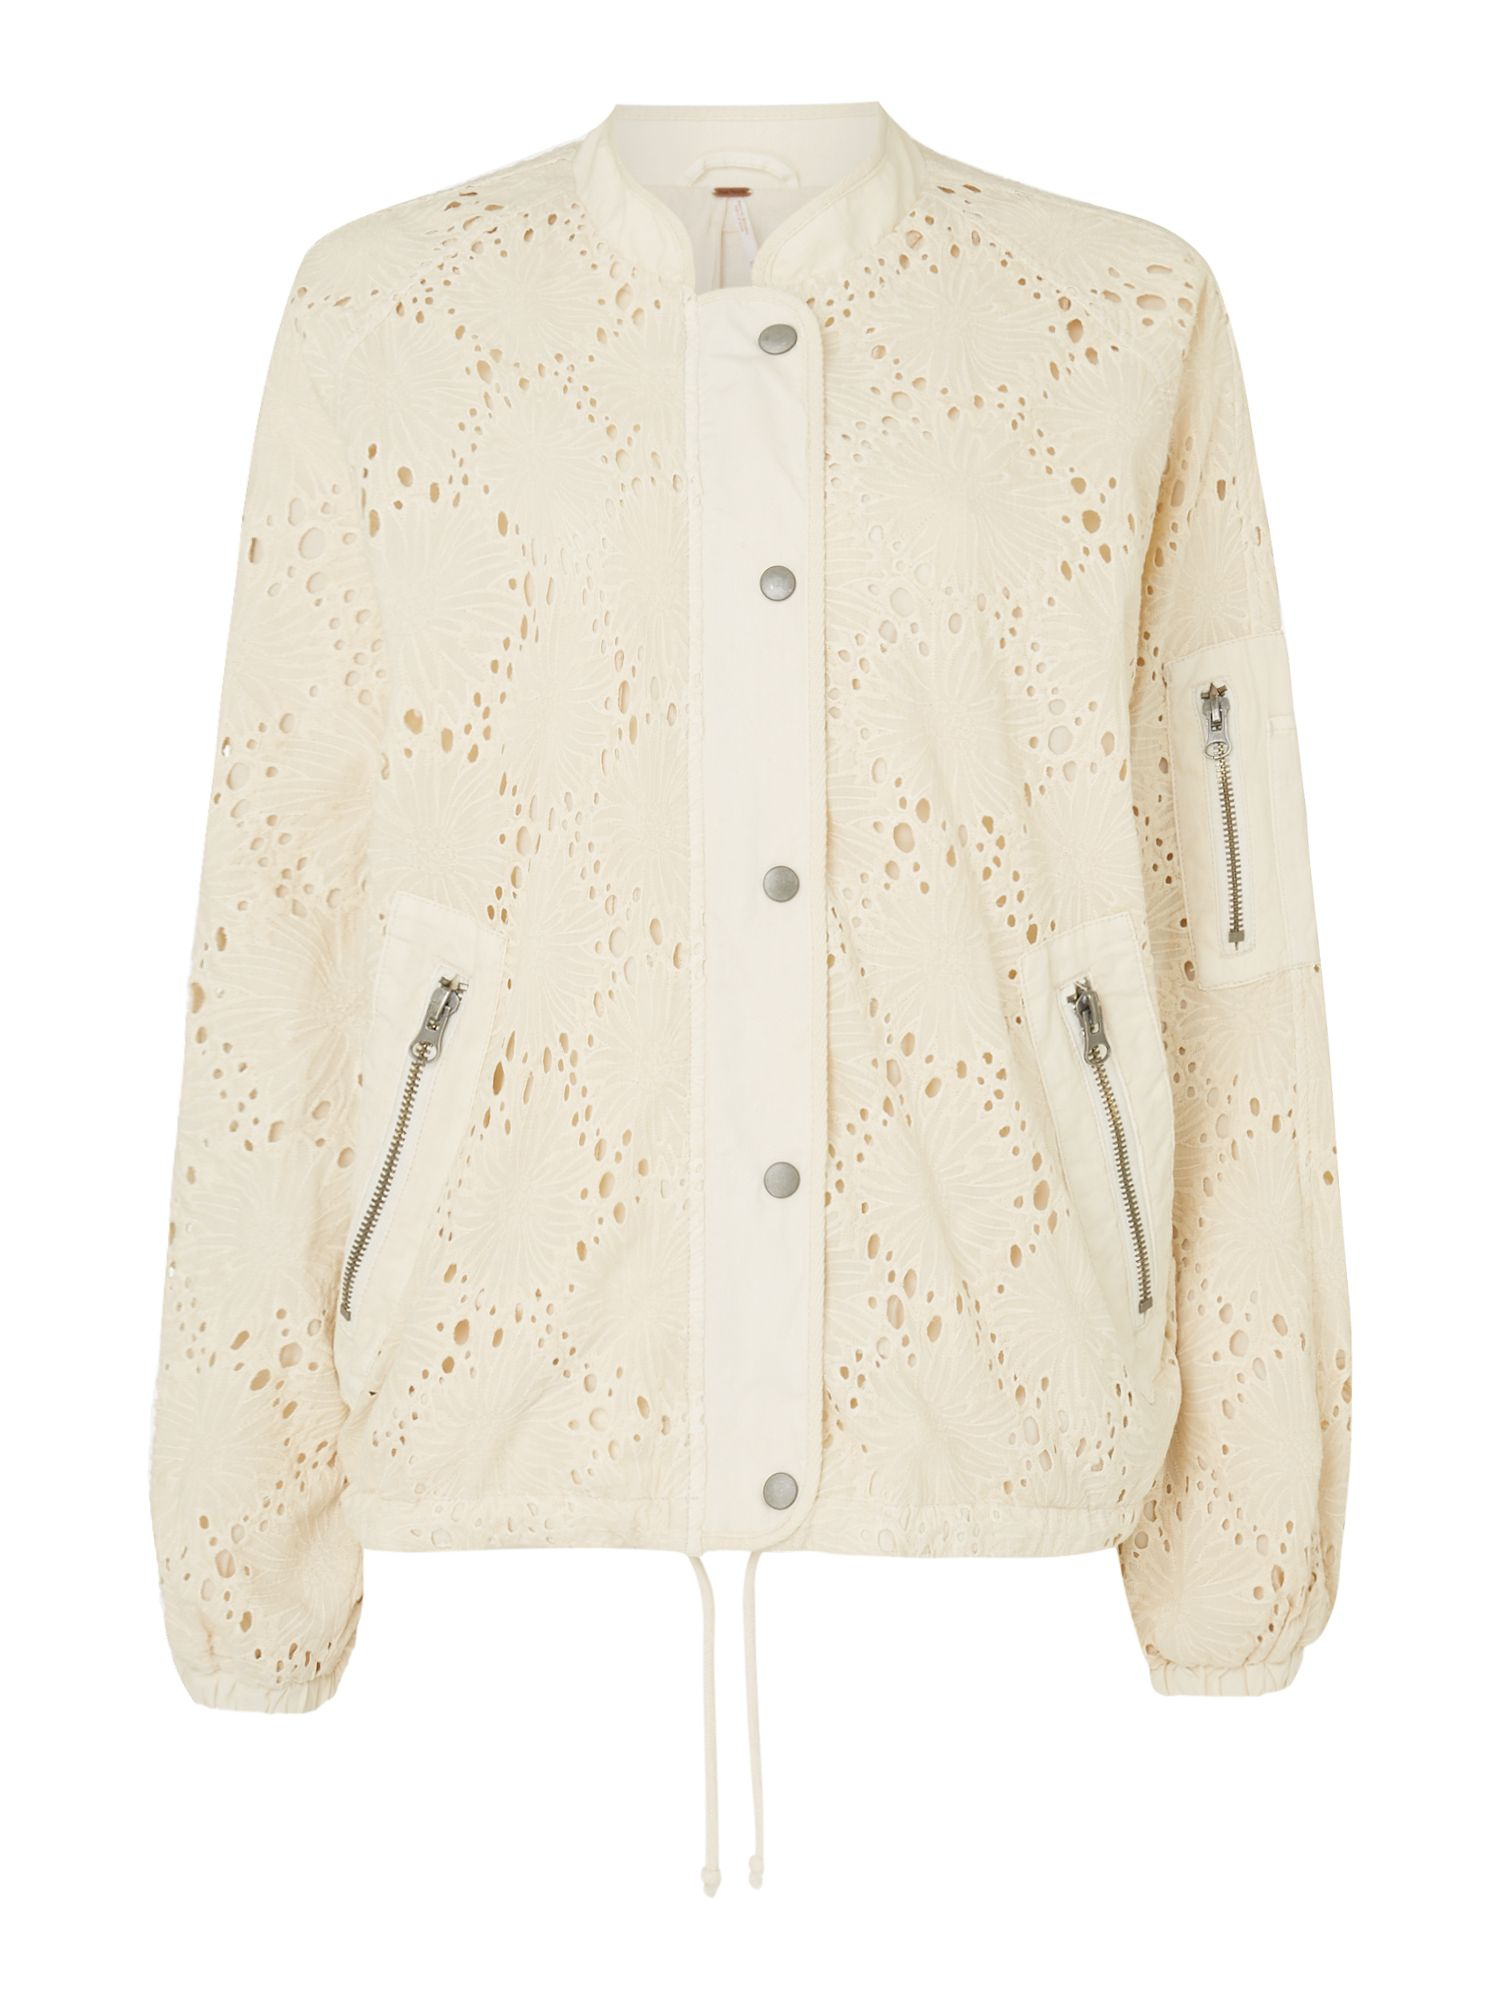 Free People Bomber Style Daisy Jane Jacket, White